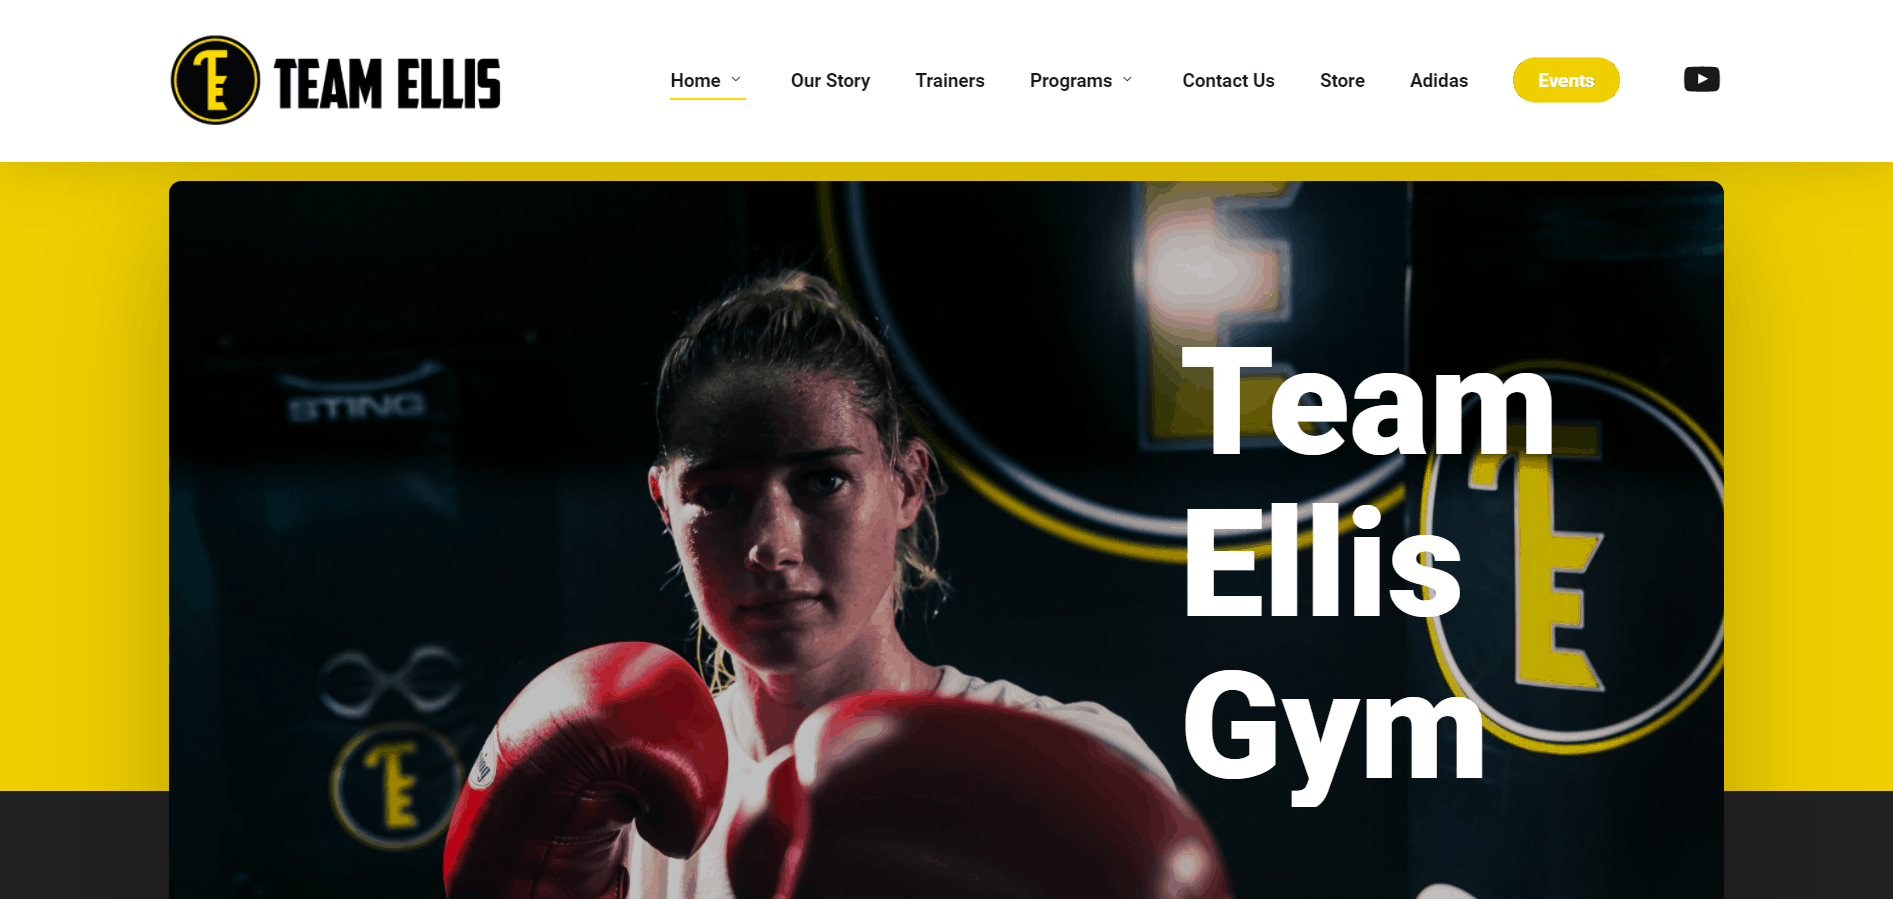 Team Ellis Gym